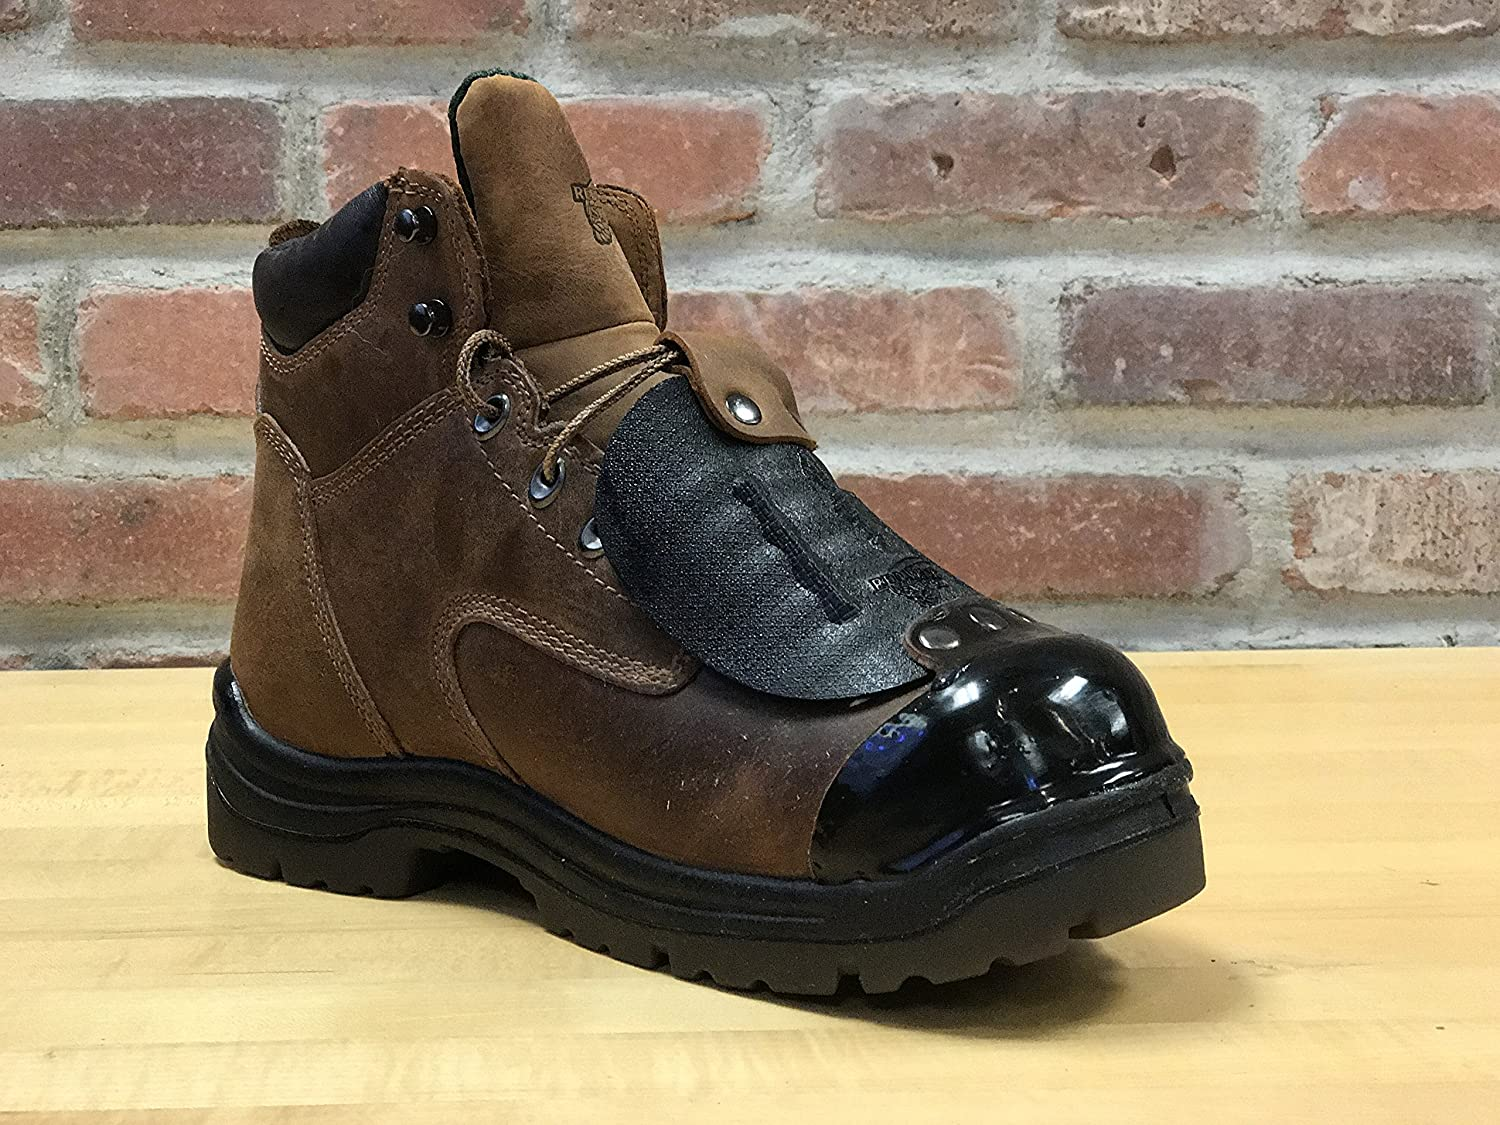 Black Tuff Toe Boot Guard Protection Repair For Steel Cut Engineer Iron Safety Boots Blue Leather Composite Heel Work Shoe Shoes